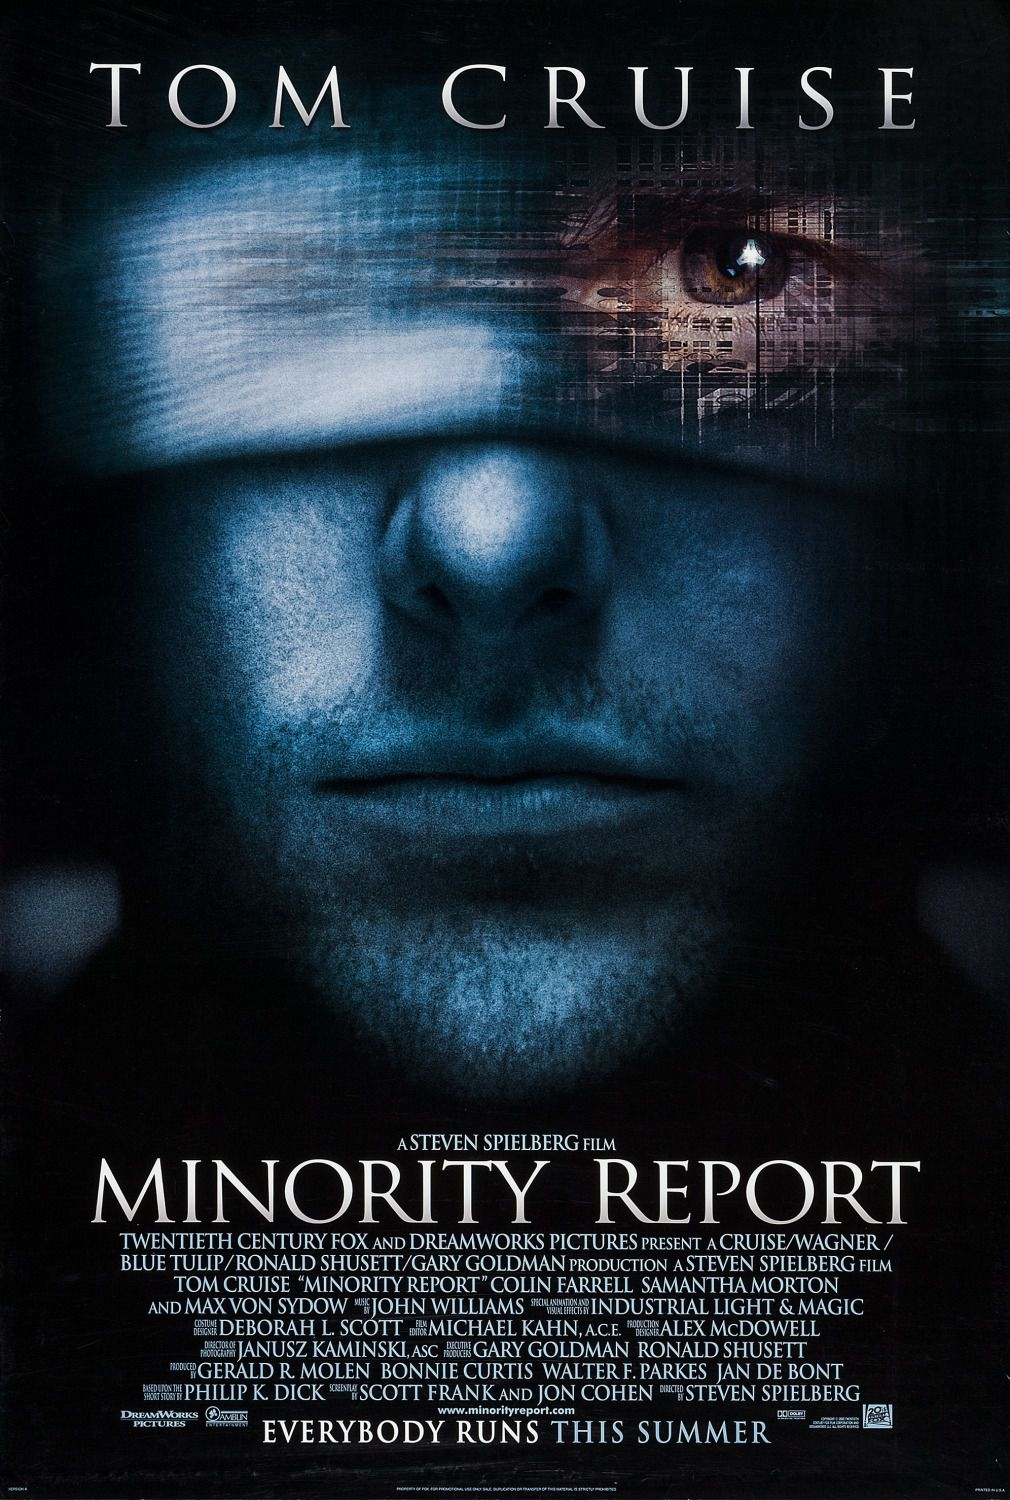 Minority report - Tom Cruise - film poster